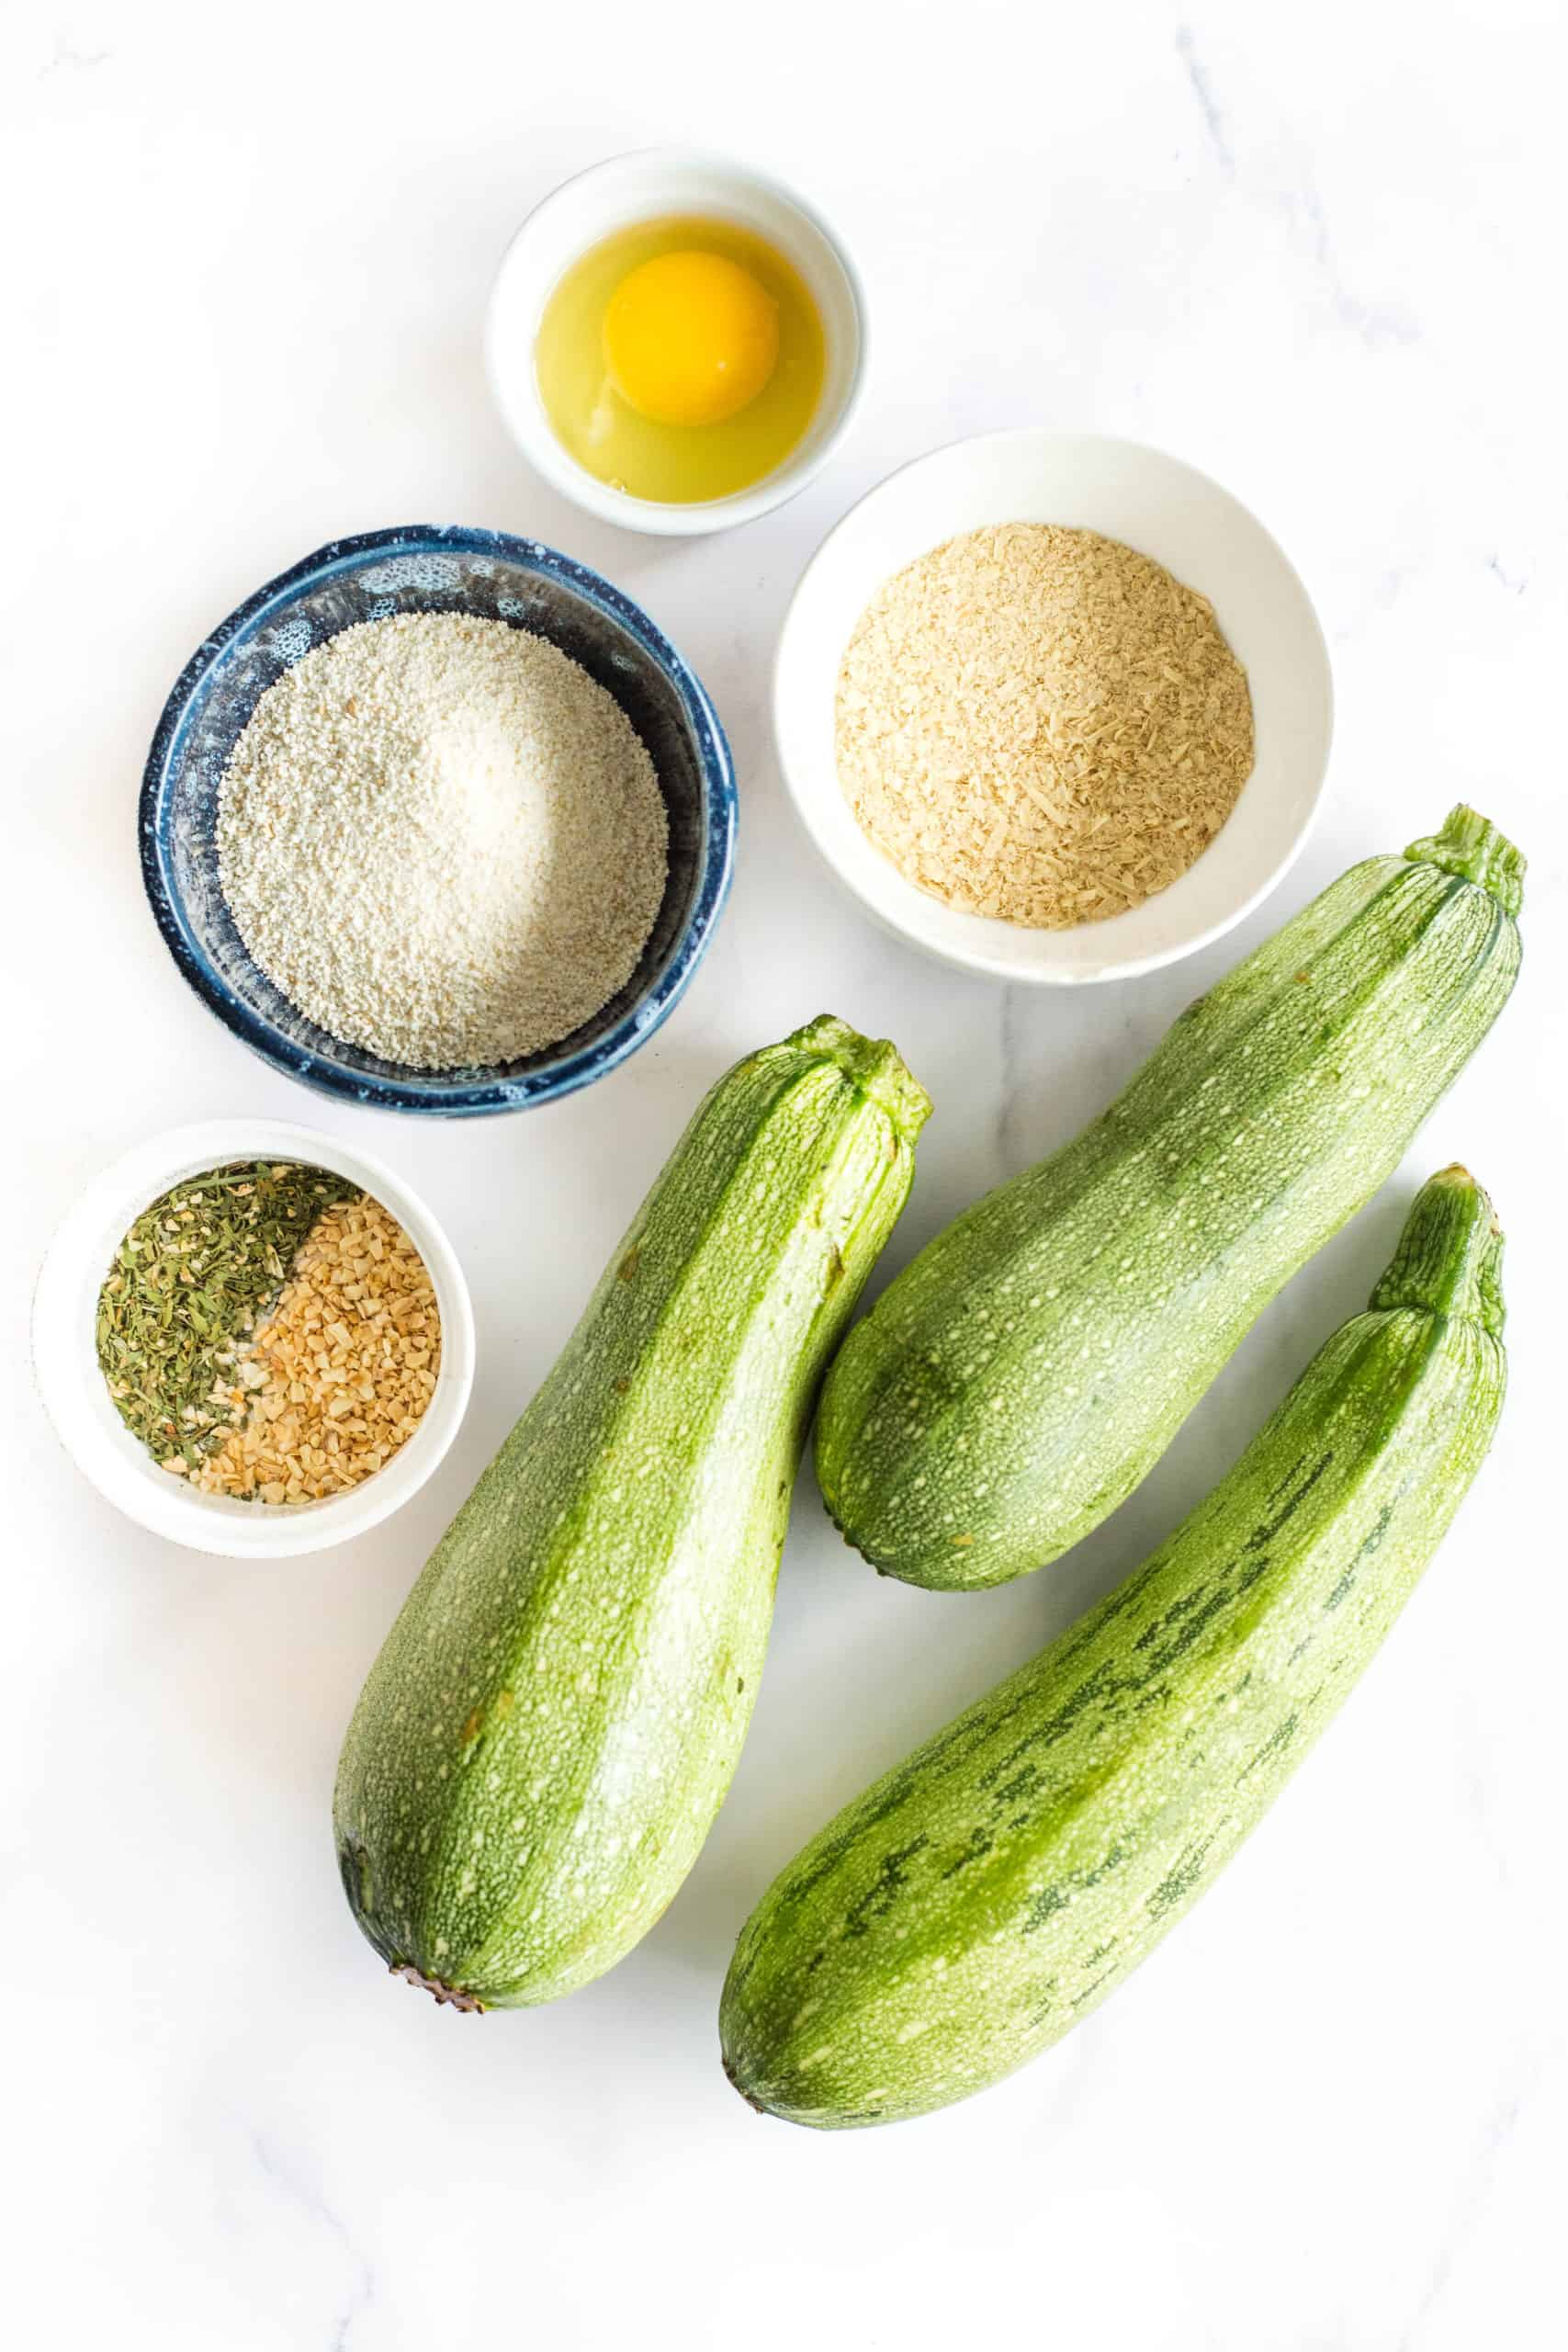 Ingredients for making zucchini fries placed on a marble board - fresh zucchini, breadcrumbs, nutritional yeast, granulated garlic, dried parsley, and an egg.